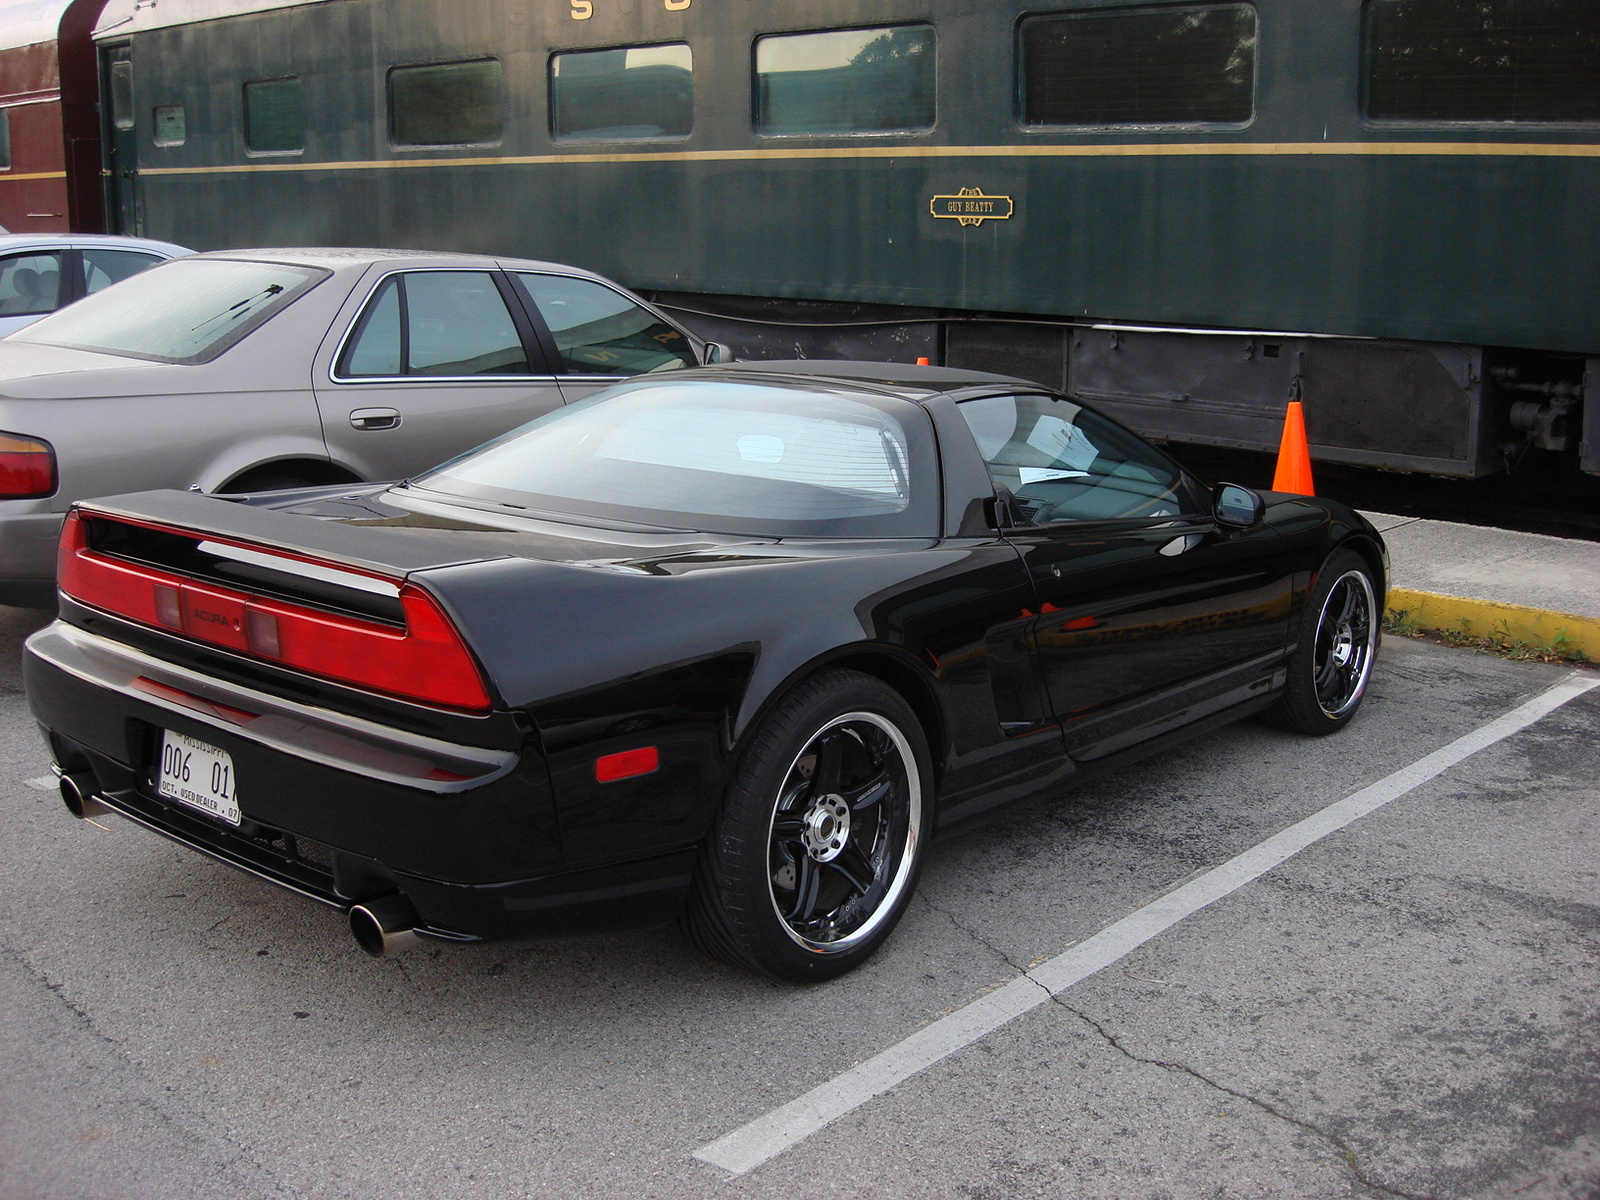 1991 Acura NSX - Other Pictures - CarGurus